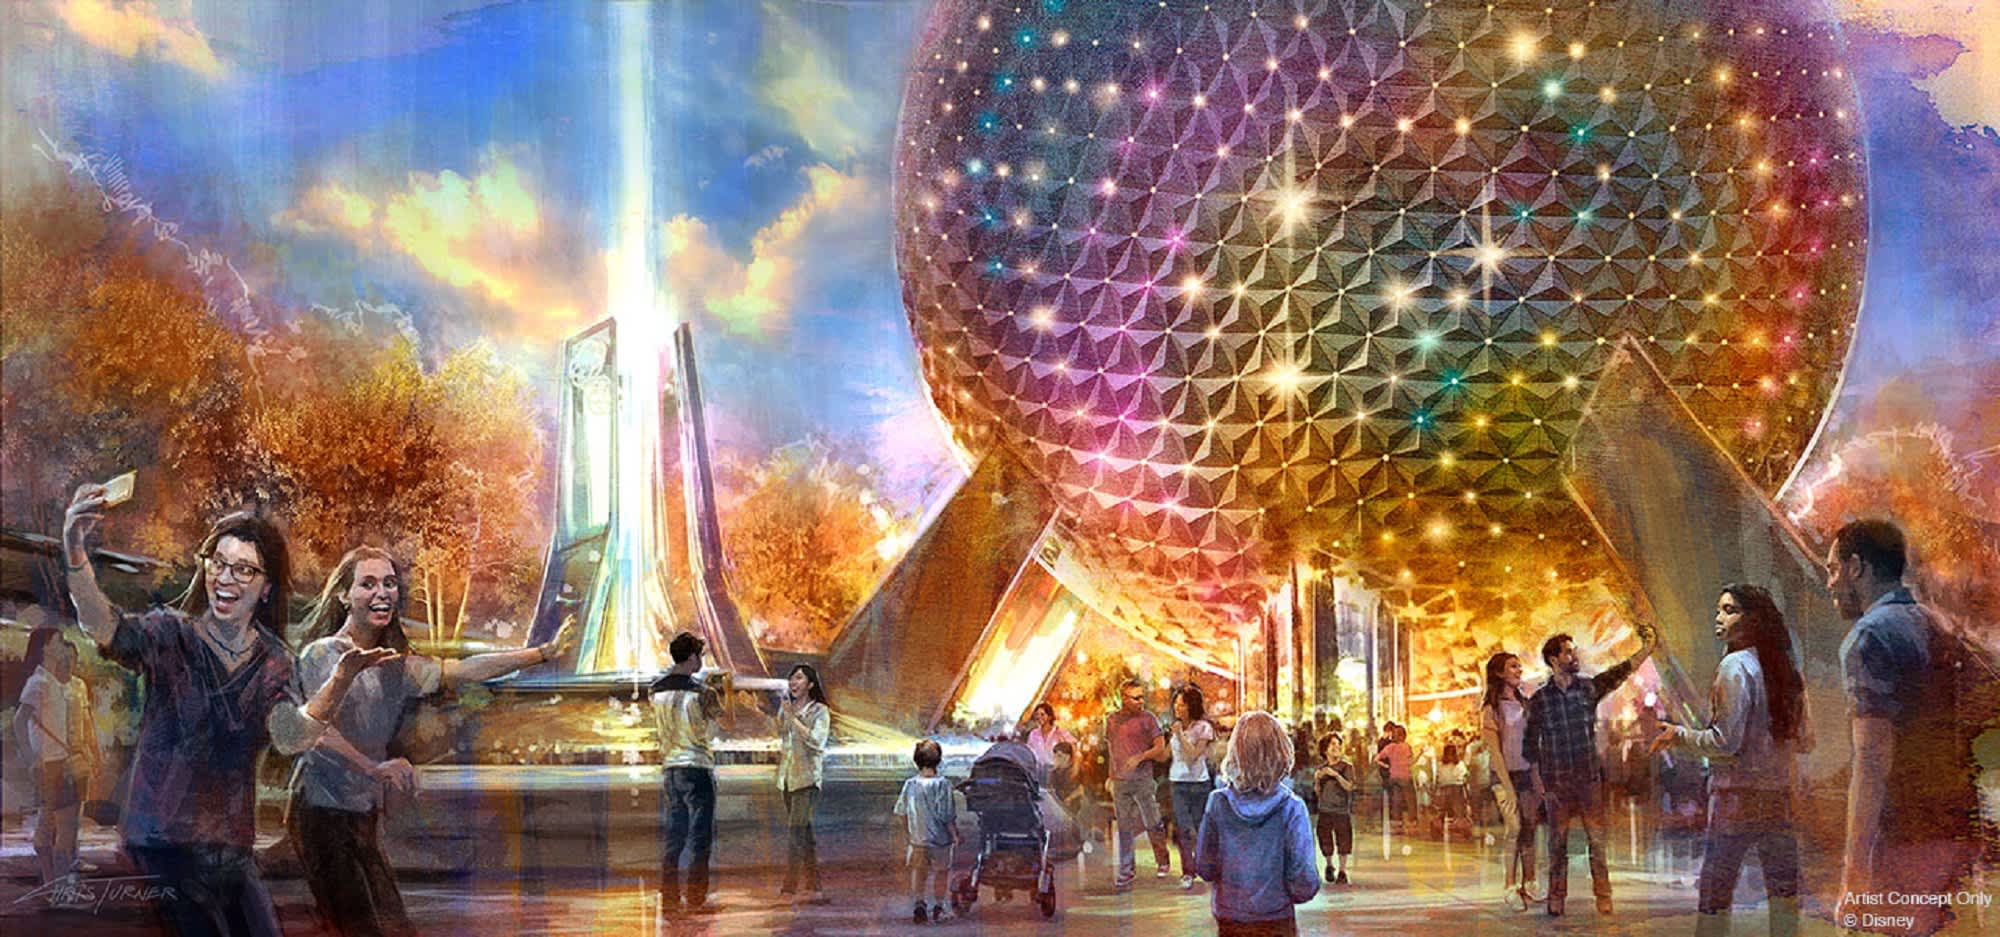 Epcot is getting Disney-fied: From 'Ratatouille' to 'Mary Poppins,' here's how the 37-year-old park is changing